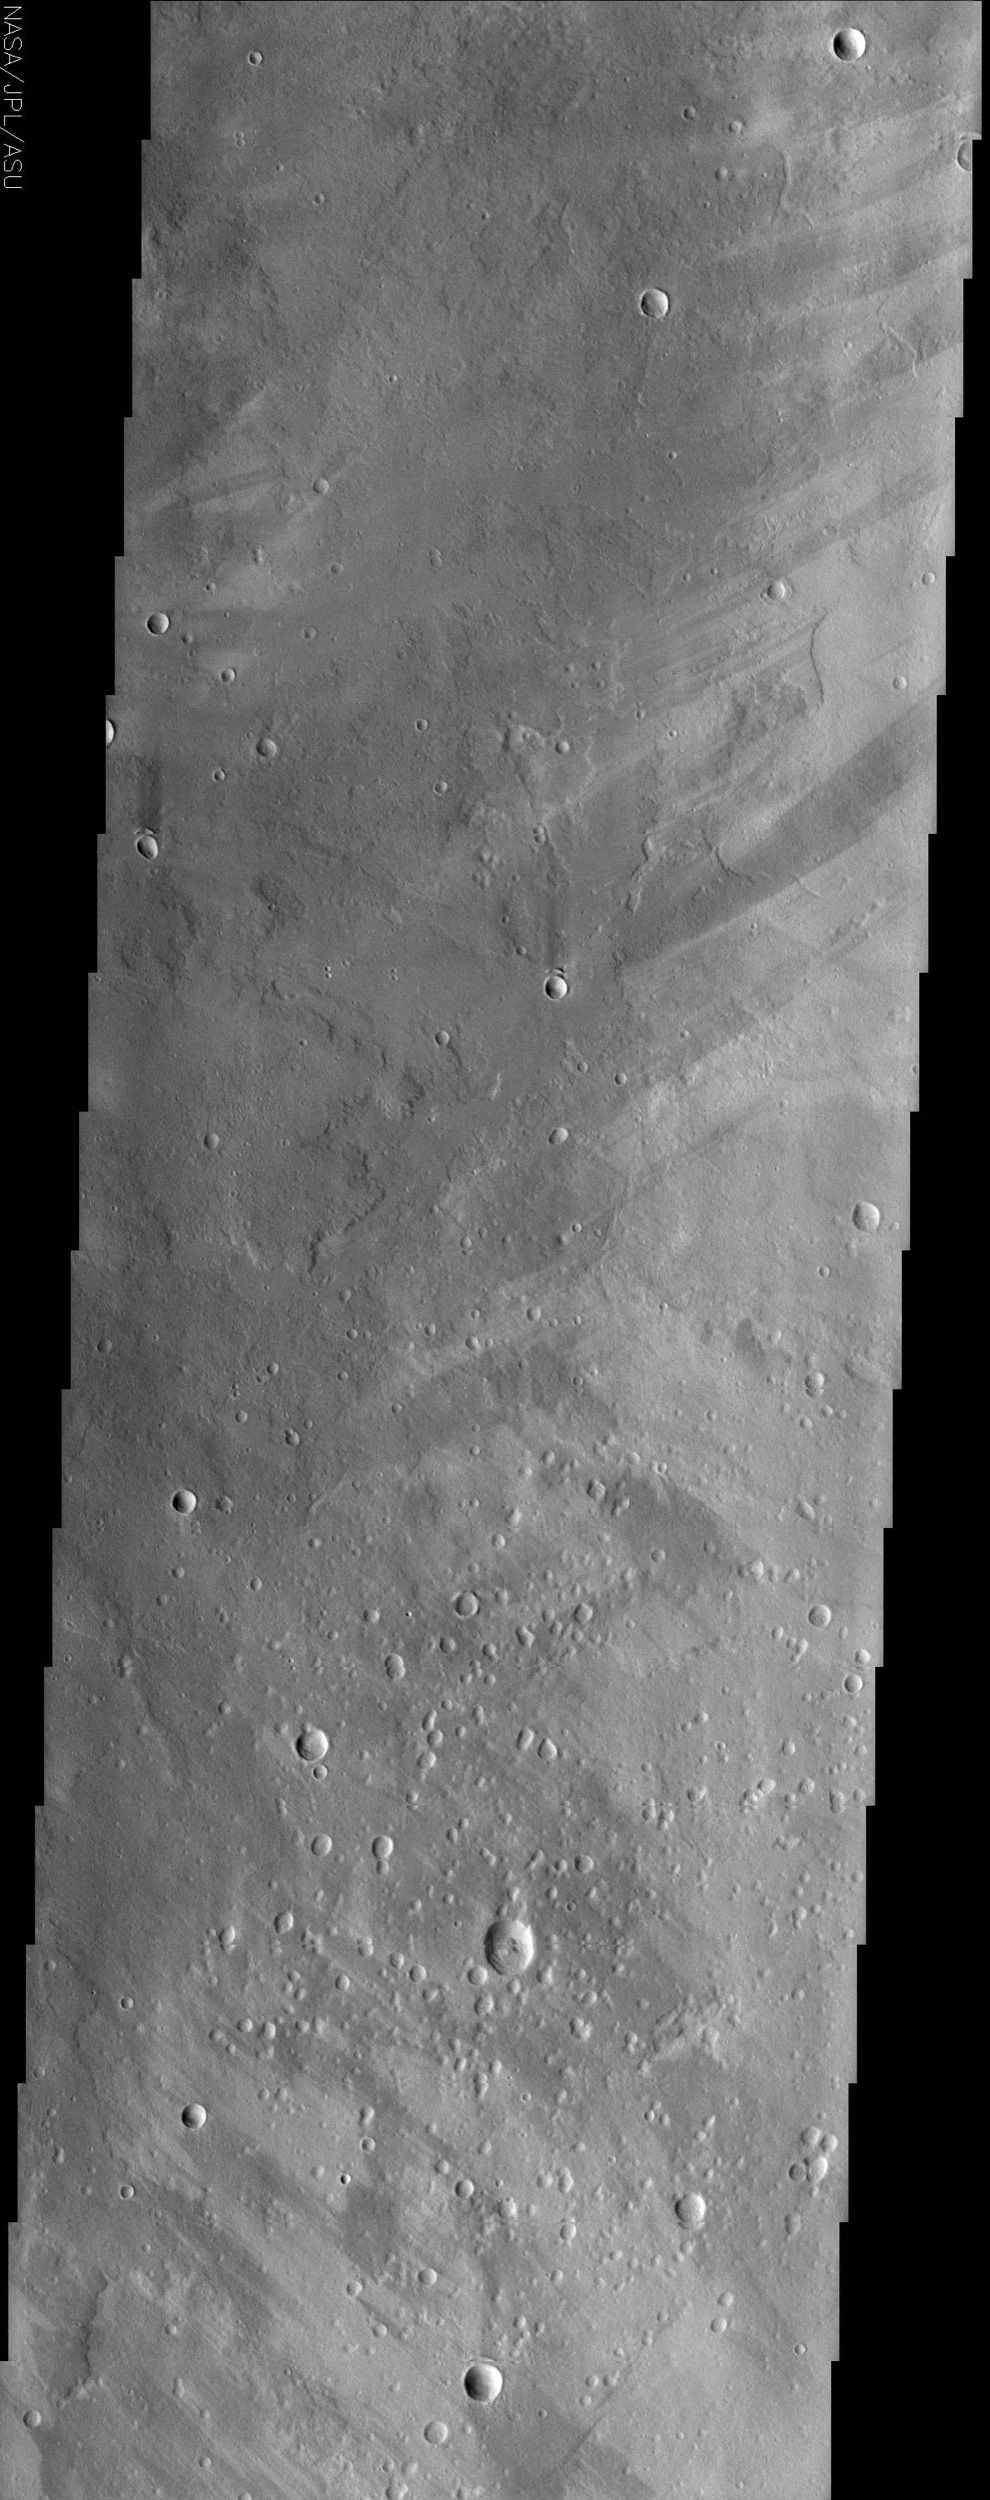 This image from NASA's Mars Odyssey spacecraft shows a region of Mars called Ophir Planum. The Valles Marineris system of canyons that stretch for thousands of kilometers across Mars are located just south of the area covered in the image.